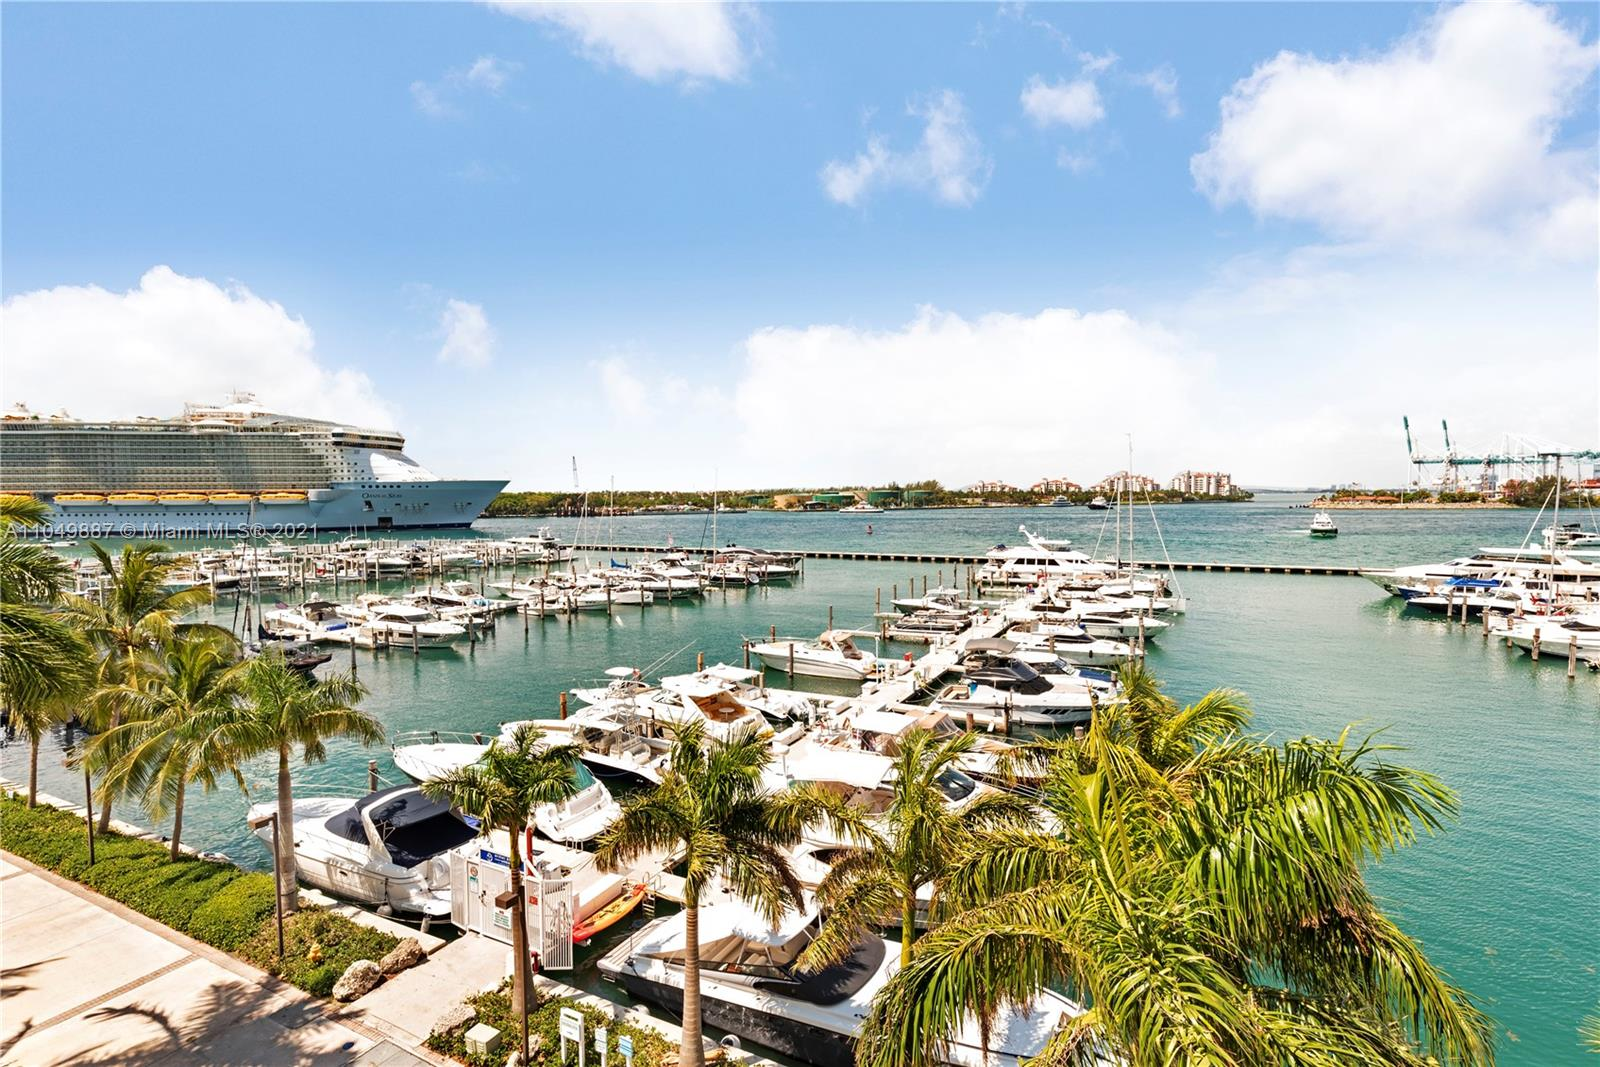 Charming direct bay corner unit in the Yacht Club.  Feels like a private home as opposed to being in a condo building. Perfect pied-a-terre for a second home or boat owner who would like easy access to the marina.  Unit can be entered either via the marina side or through the building.  One bedroom with small den that can be used for an office or day bed for guests/visitors.  Assigned parking space right next to the unit! All assessments paid for.  The yacht club is undergoing lobby renovations which will be complete this summer.  Tennis courts, pool deck, convenience store, hair salon, fitness center, pet friendly and flexible monthly rentals, 12 x per year allowed.